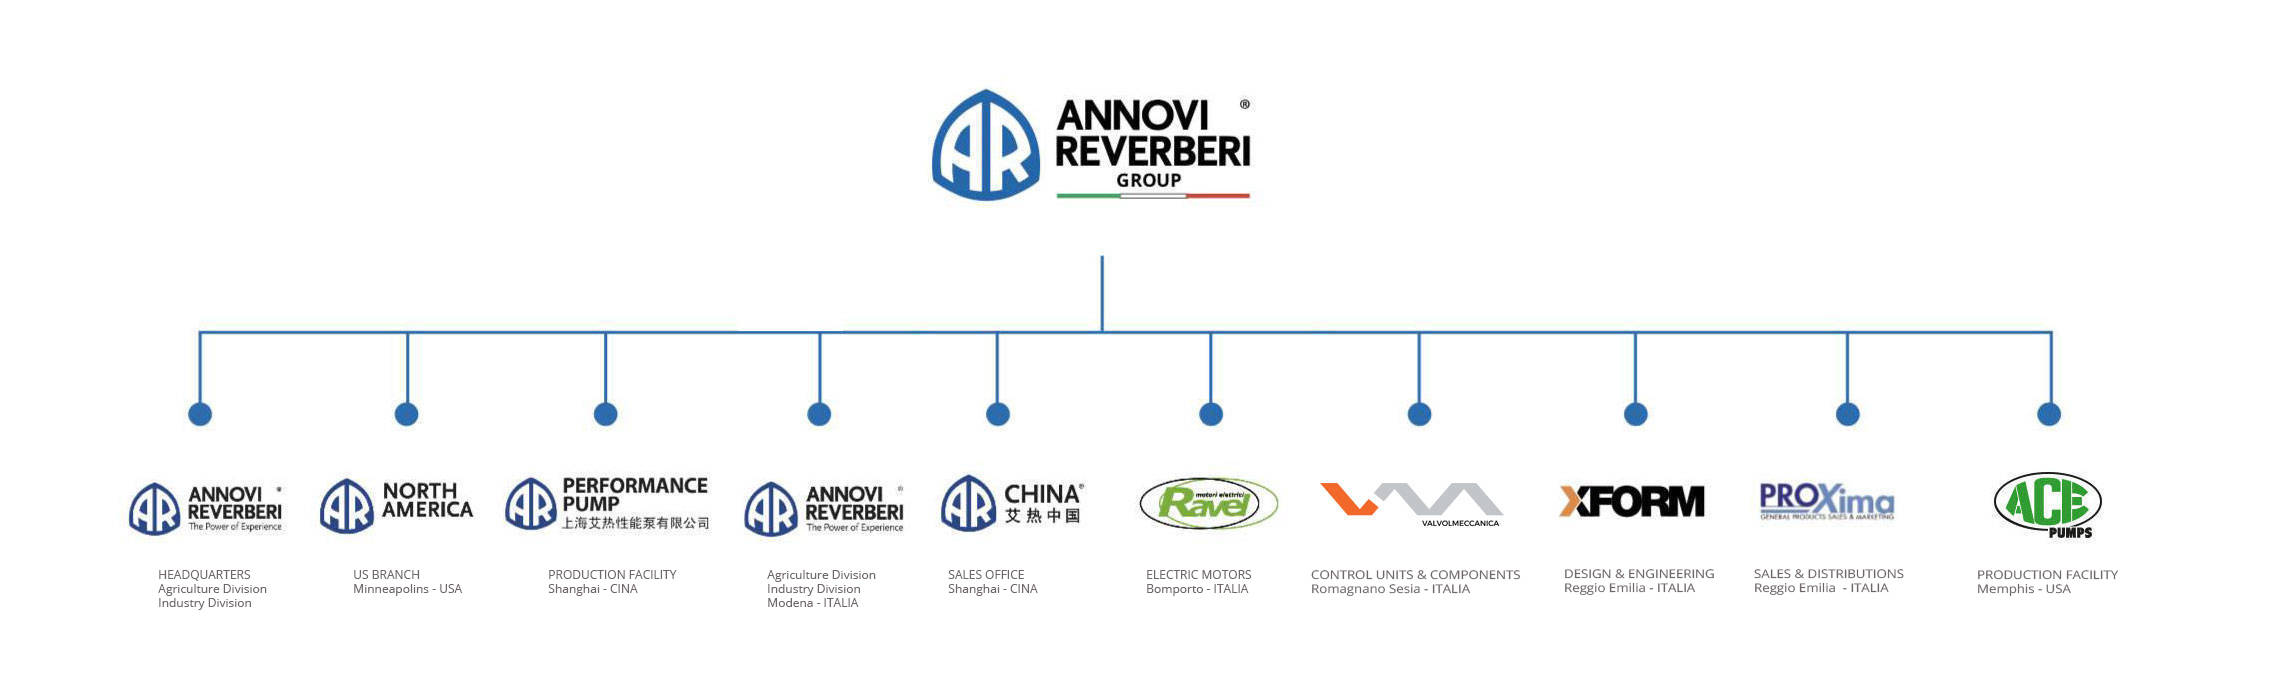 The Annovi Reverberi Group